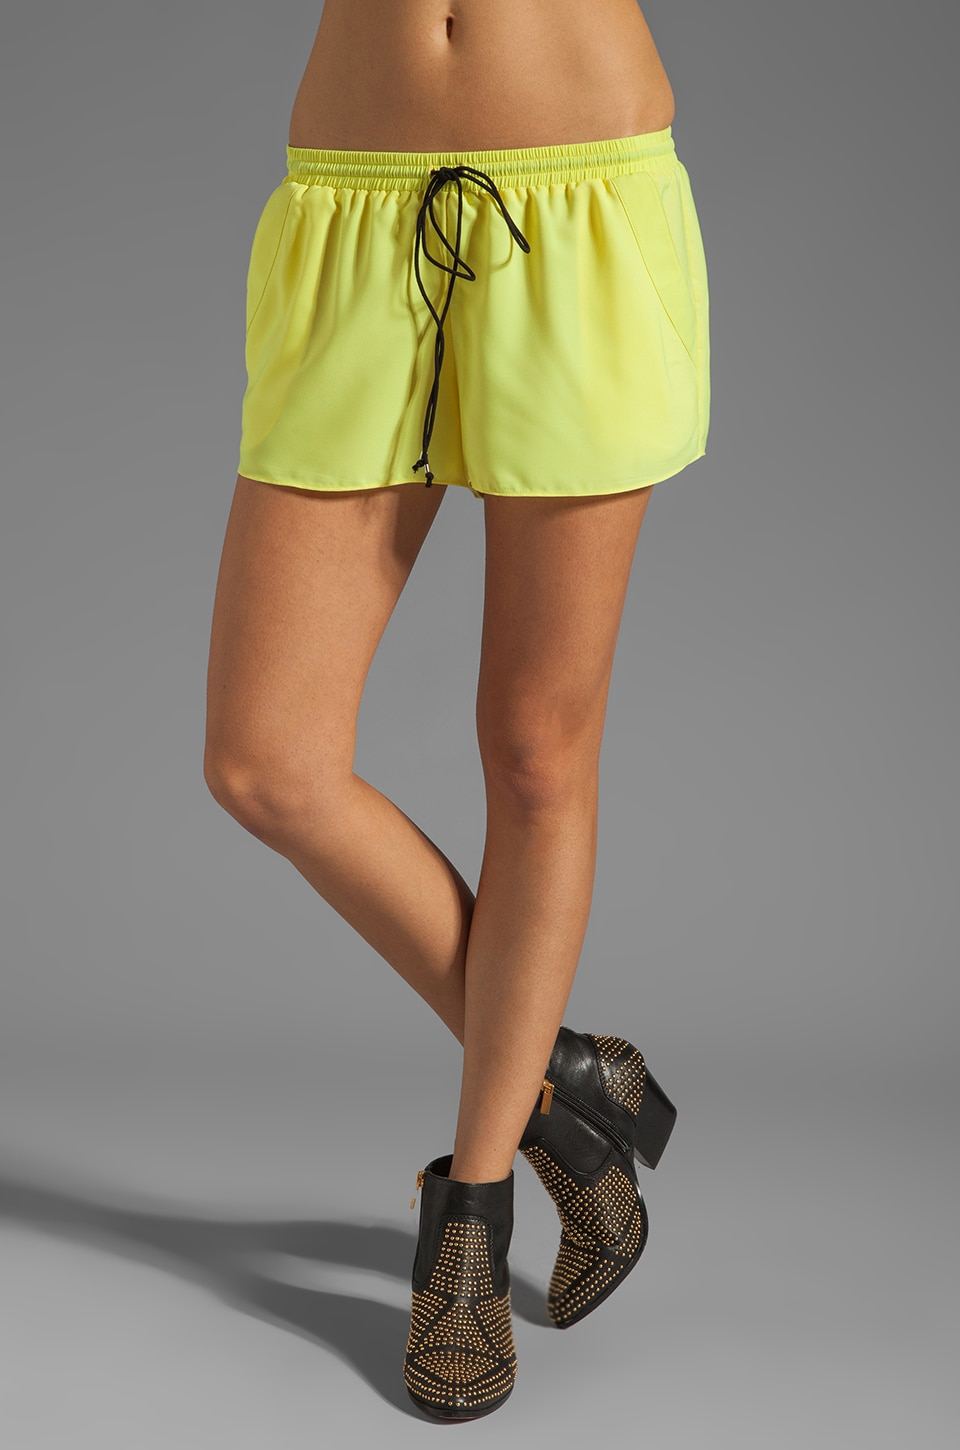 Dolce Vita Macie Mojave Short in Yellow